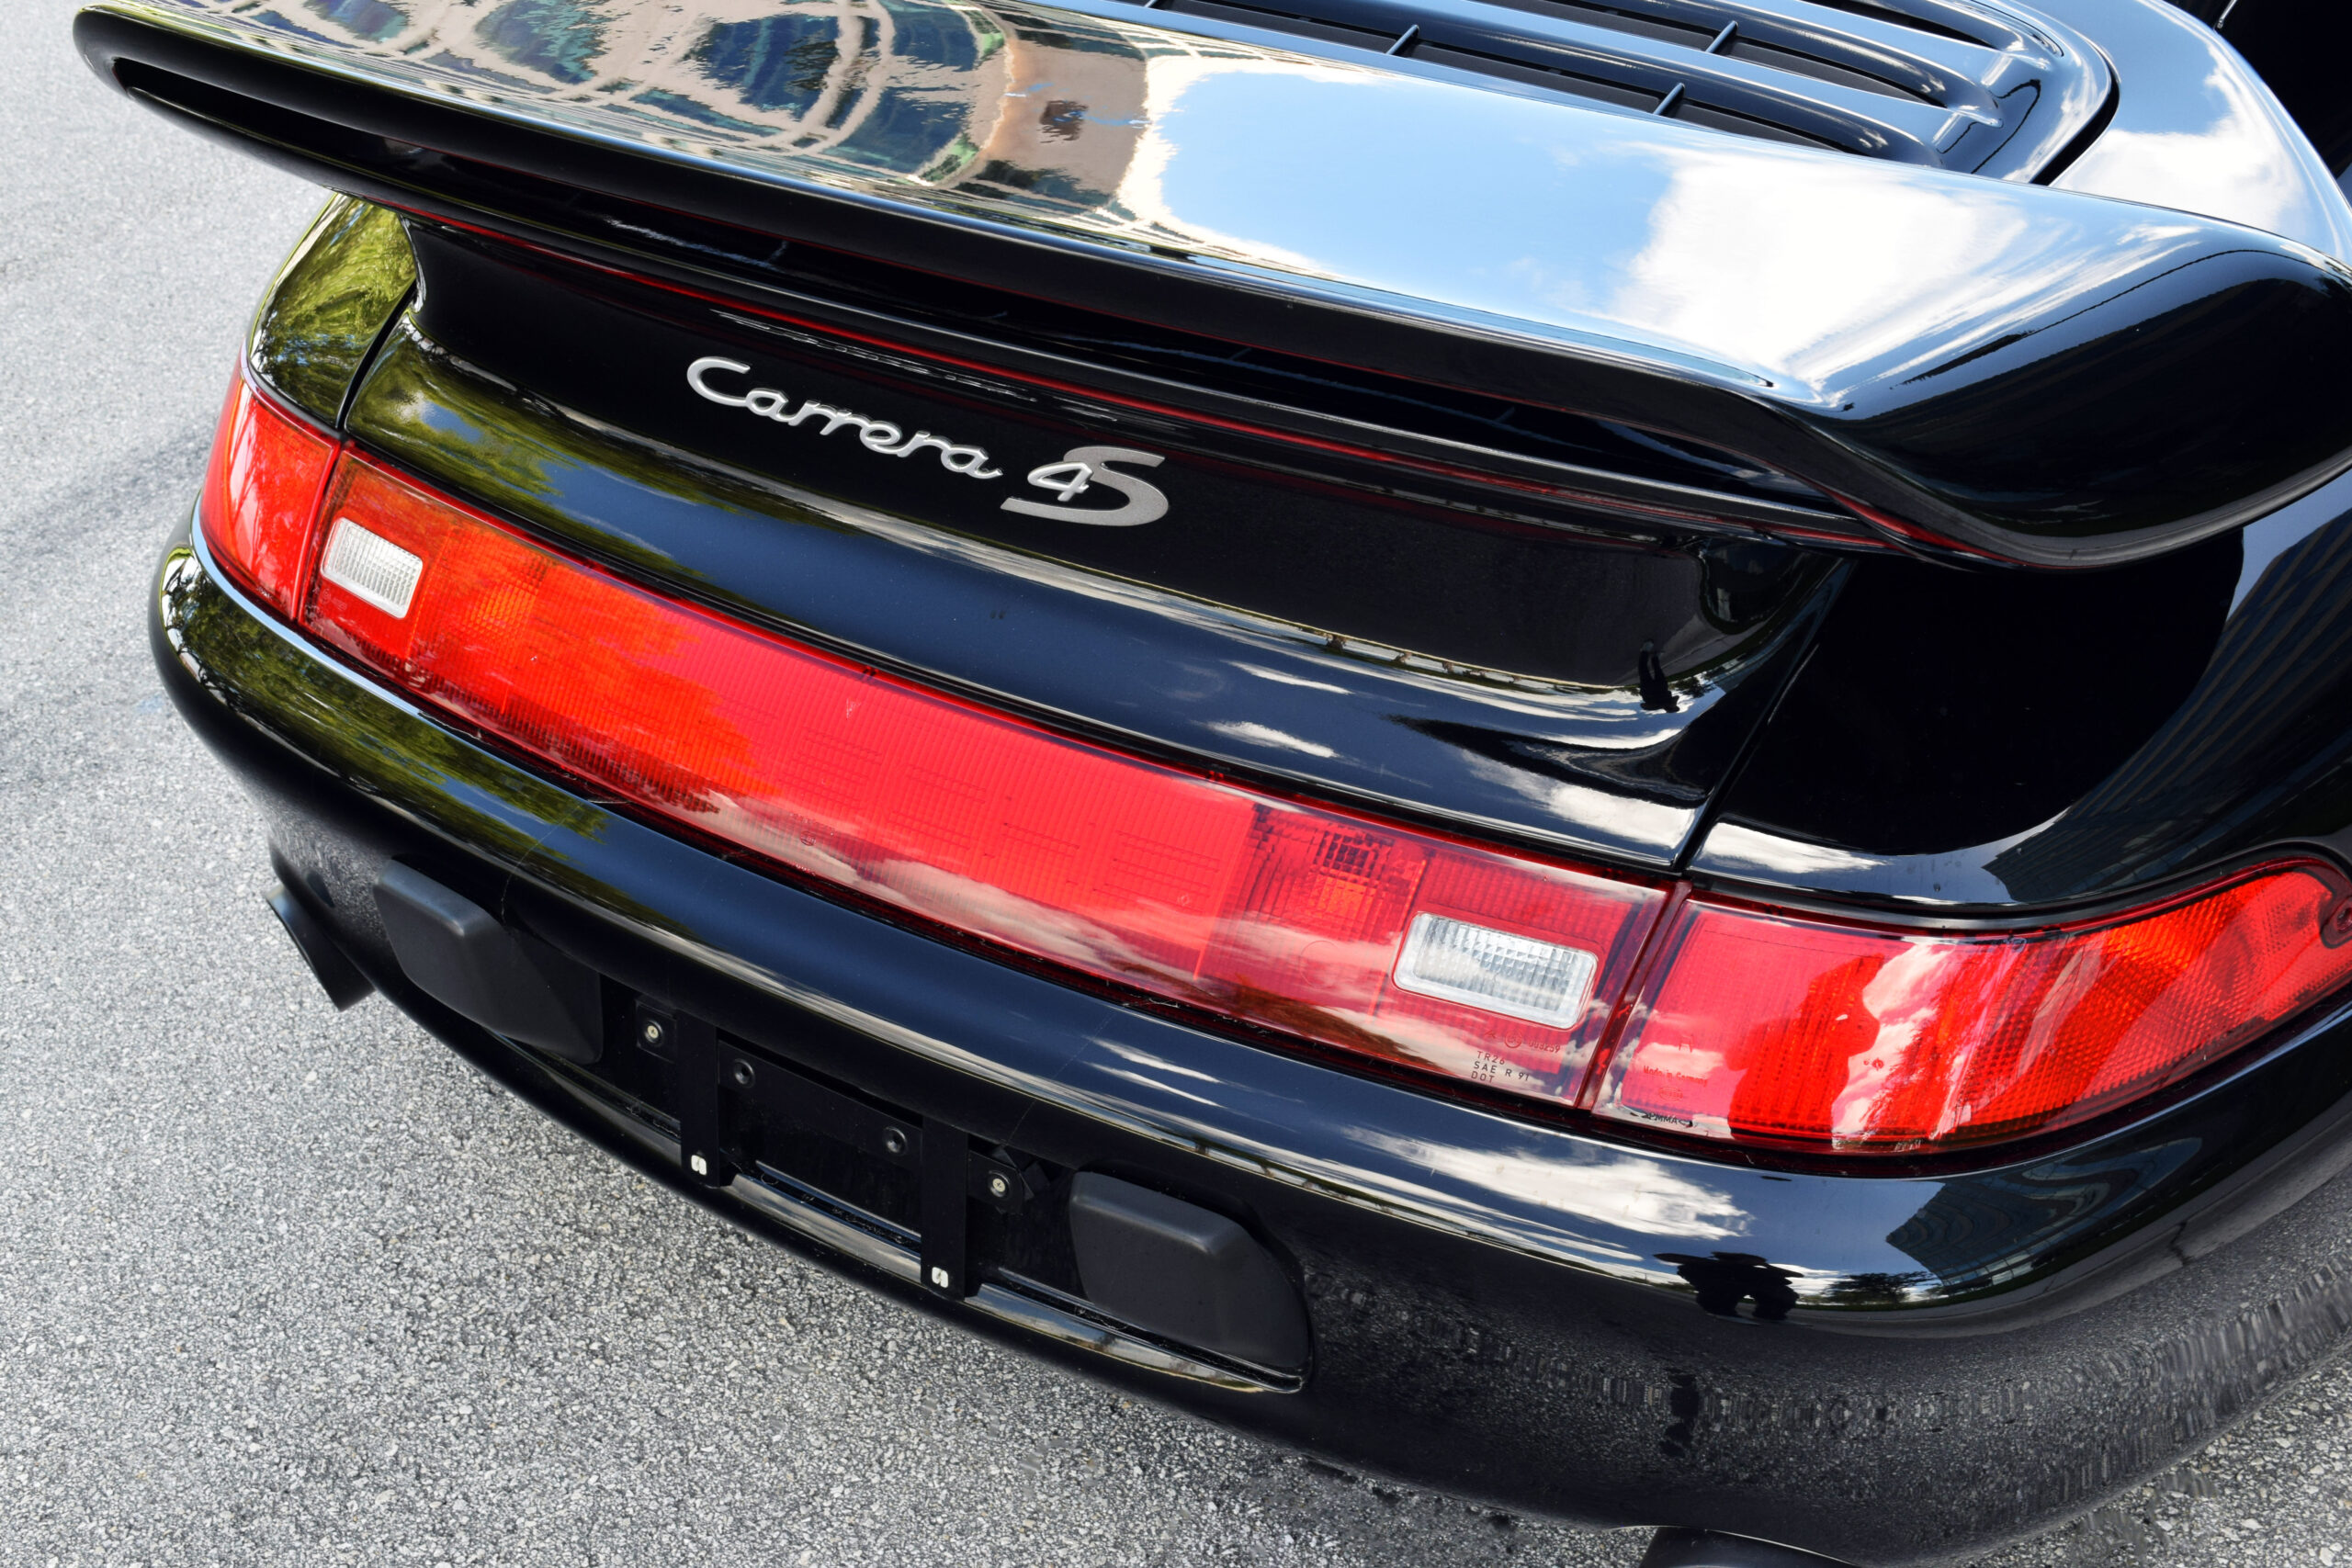 1997 993 Carrera 4S, rare FACTORY TURBO S AEROKIT, loaded with options, service records and manuals